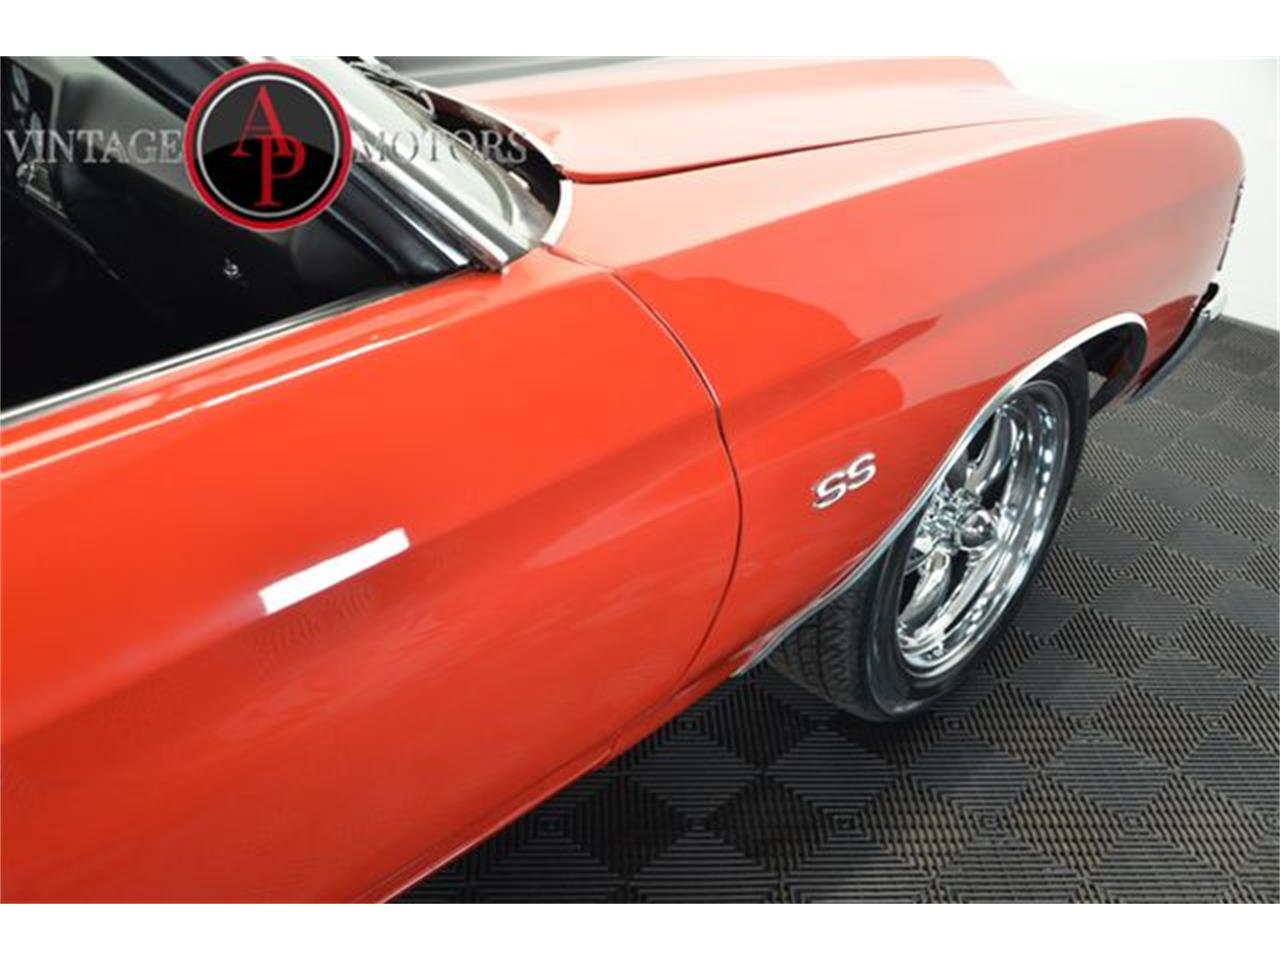 1971 Chevrolet Chevelle for sale in Statesville, NC – photo 21